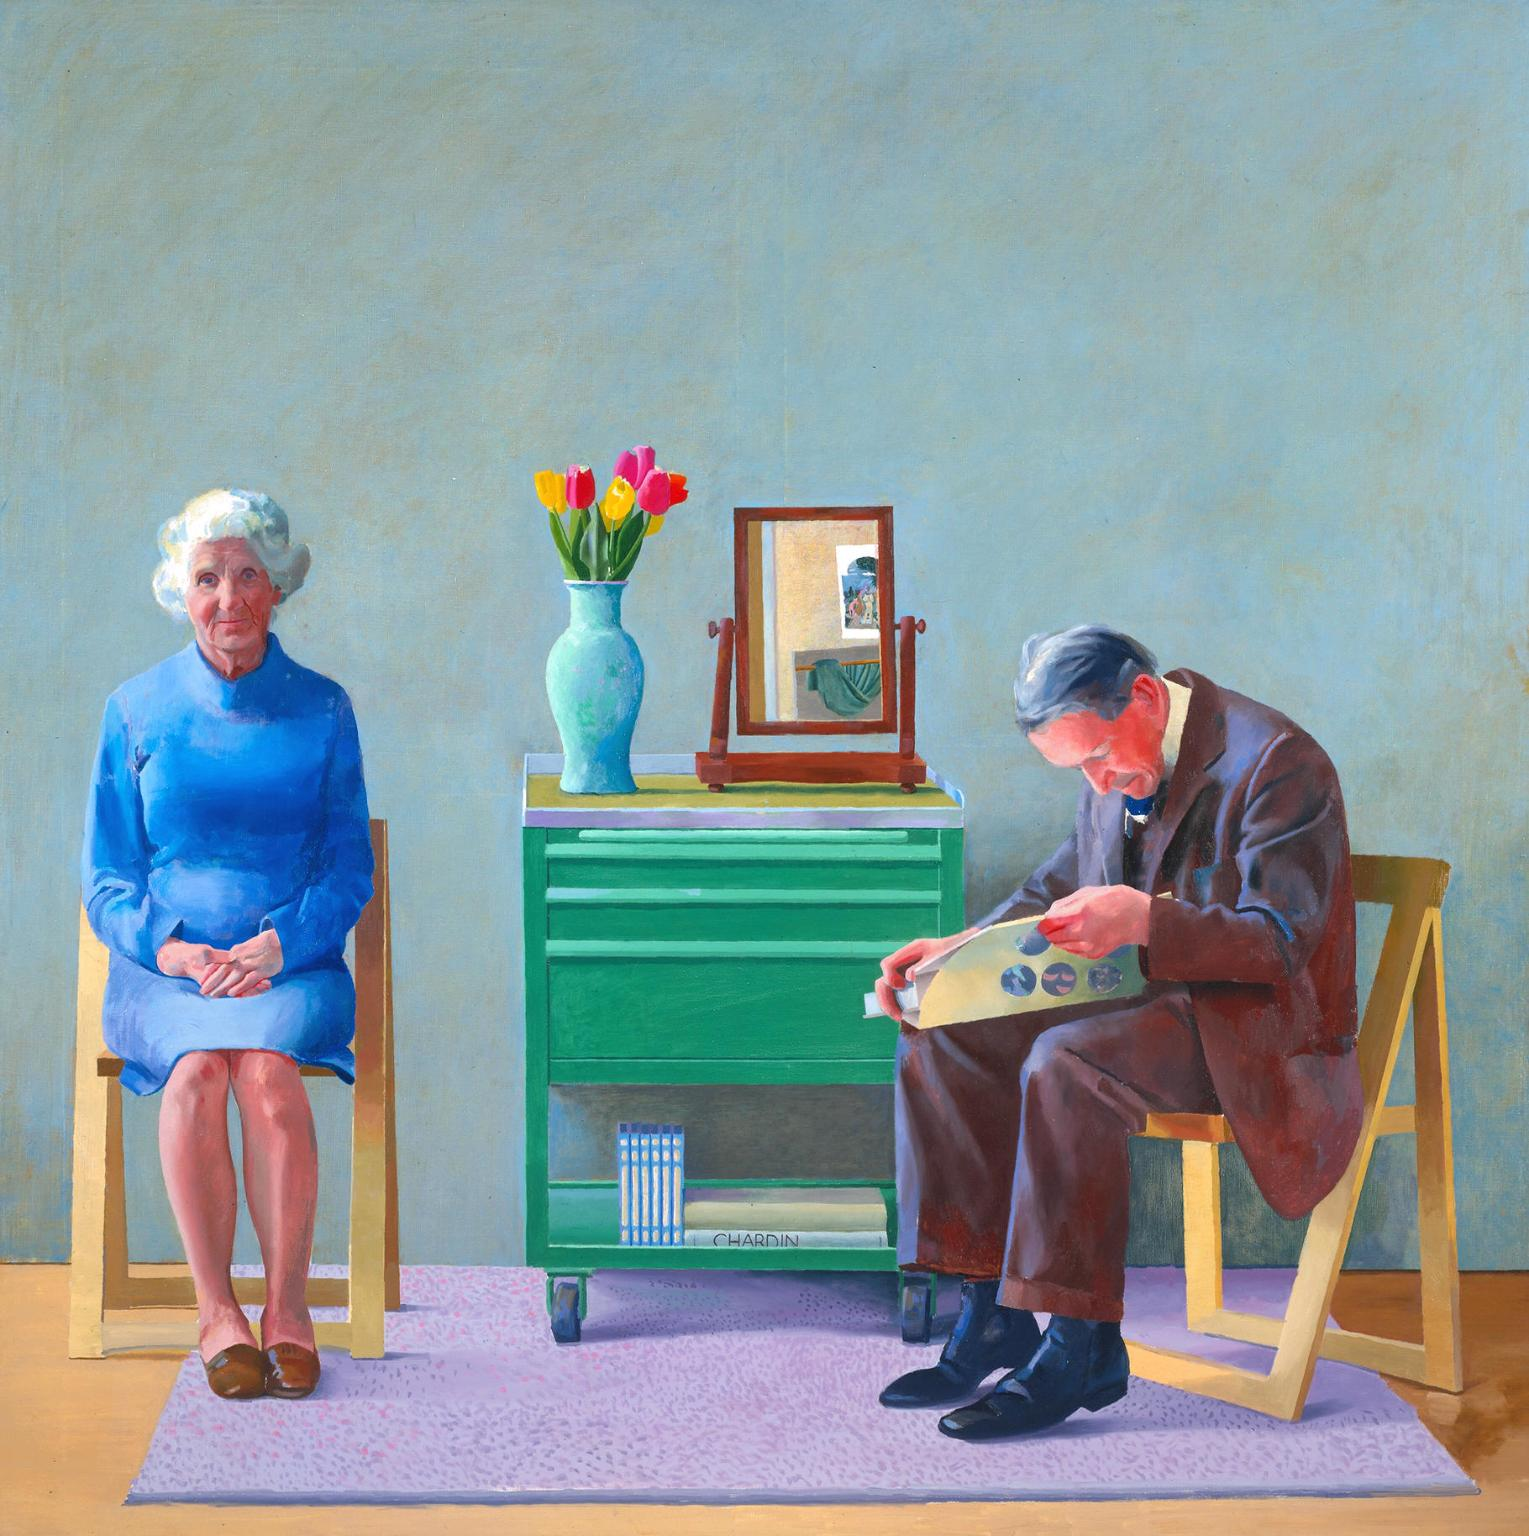 David Hockney - My parents - 1977